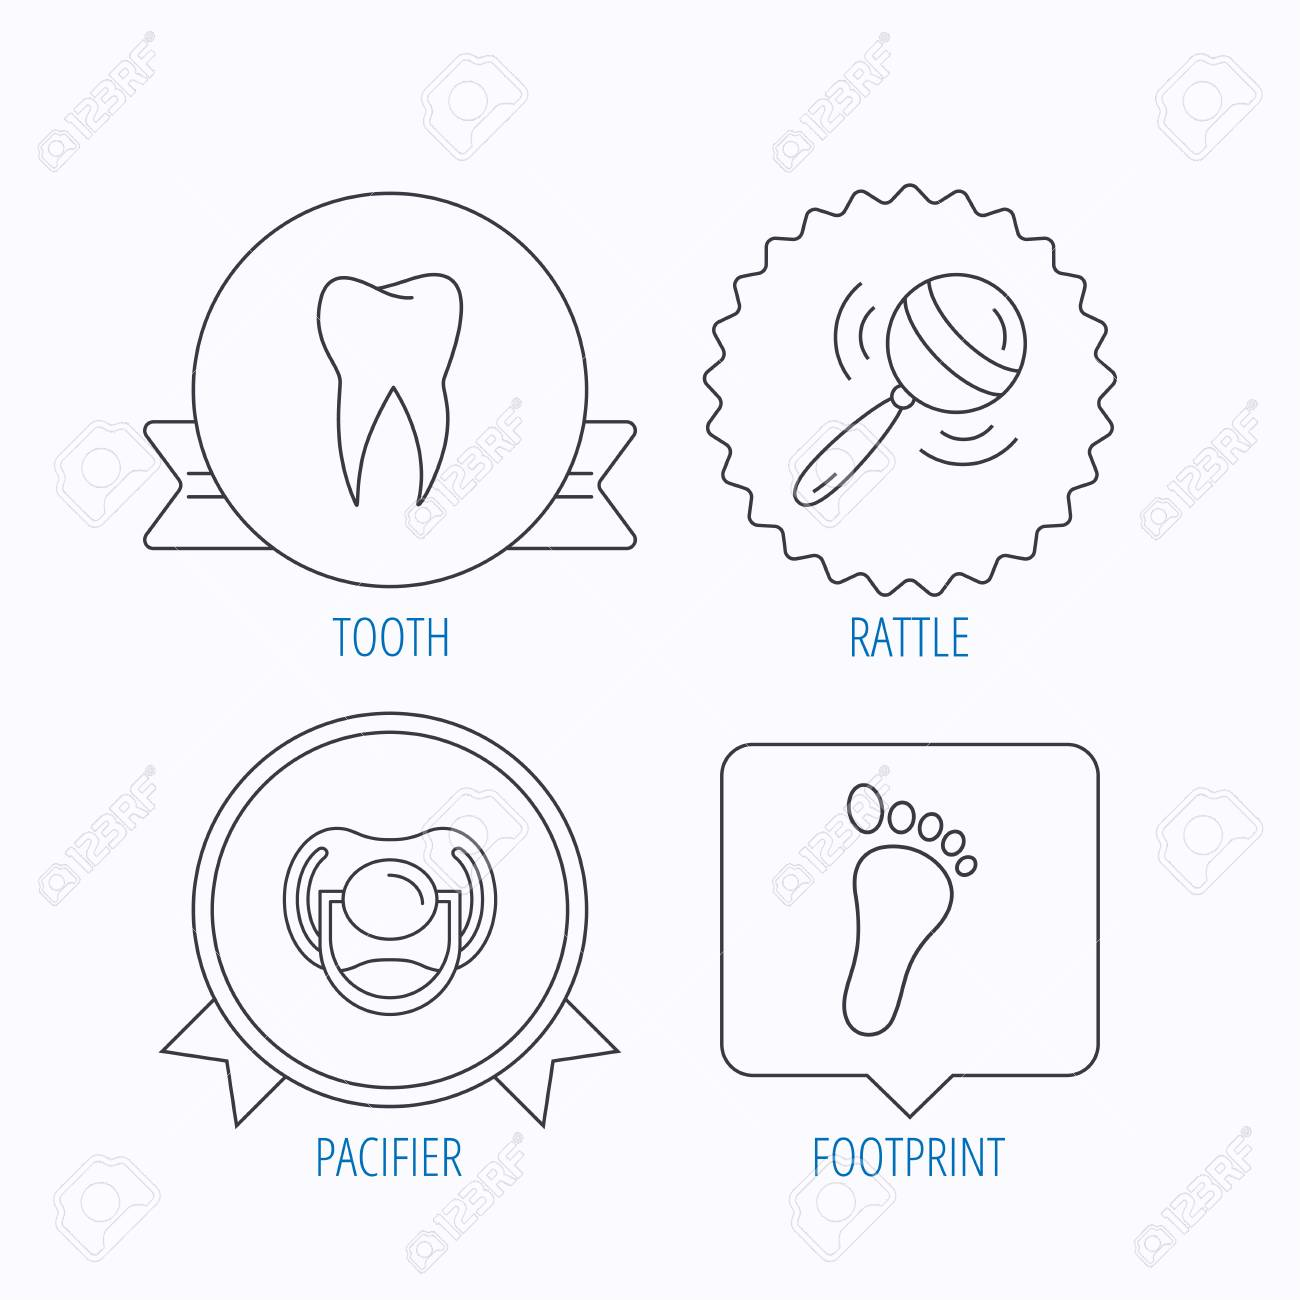 hight resolution of pacifier footprint and dental tooth icons rattle toy linear sign award medal